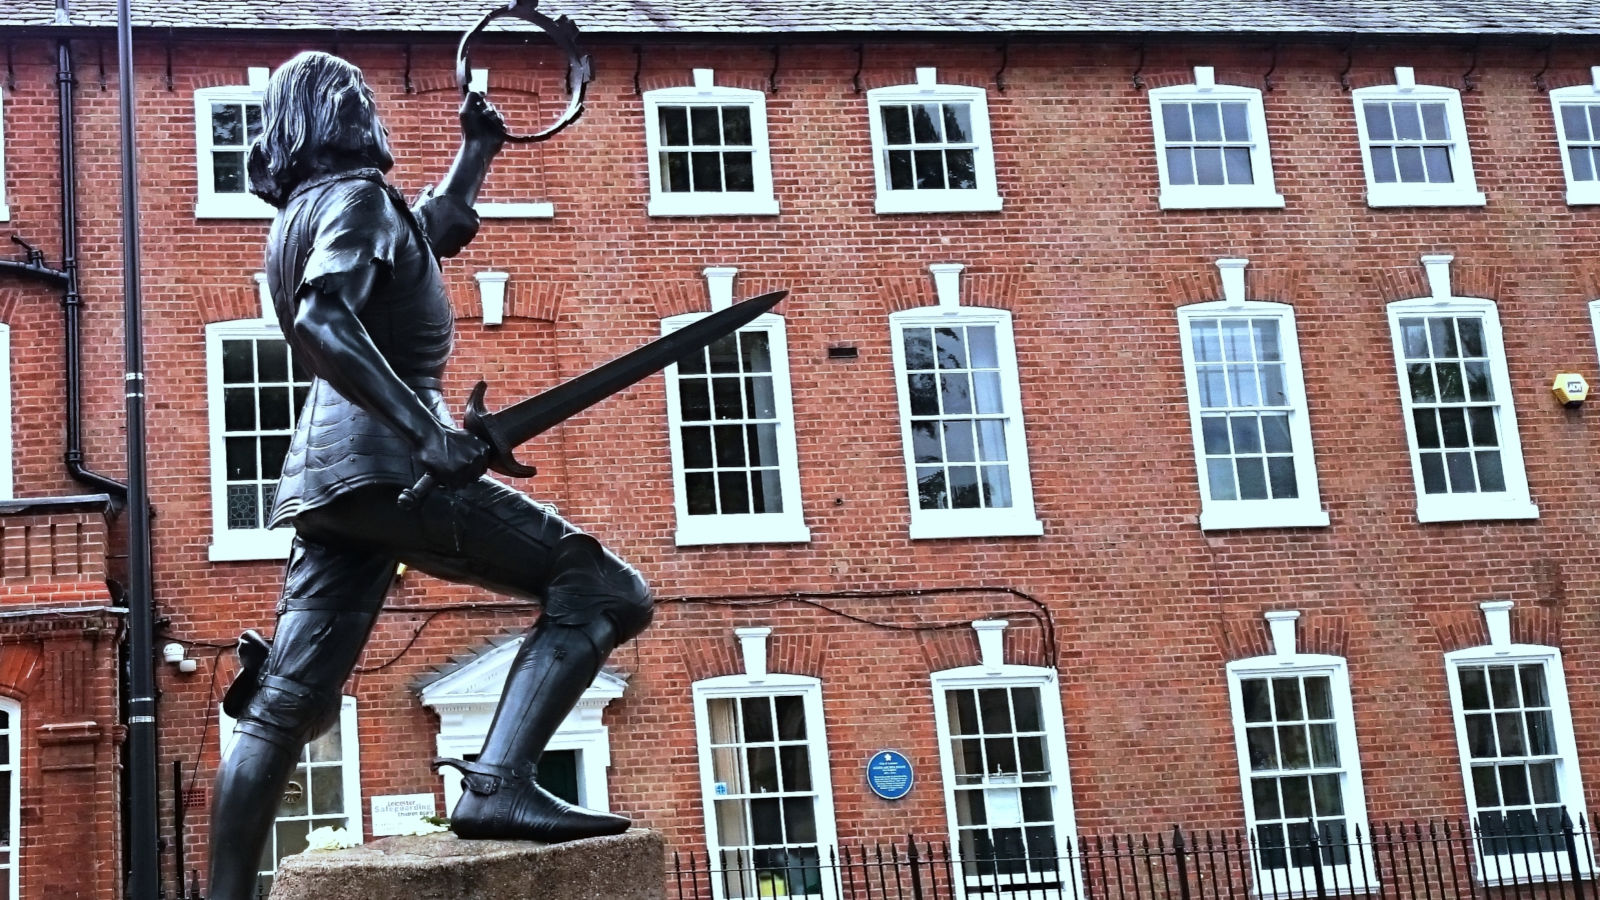 Leicester Greyfriars Heritage Initiative - Events - Photography Competition